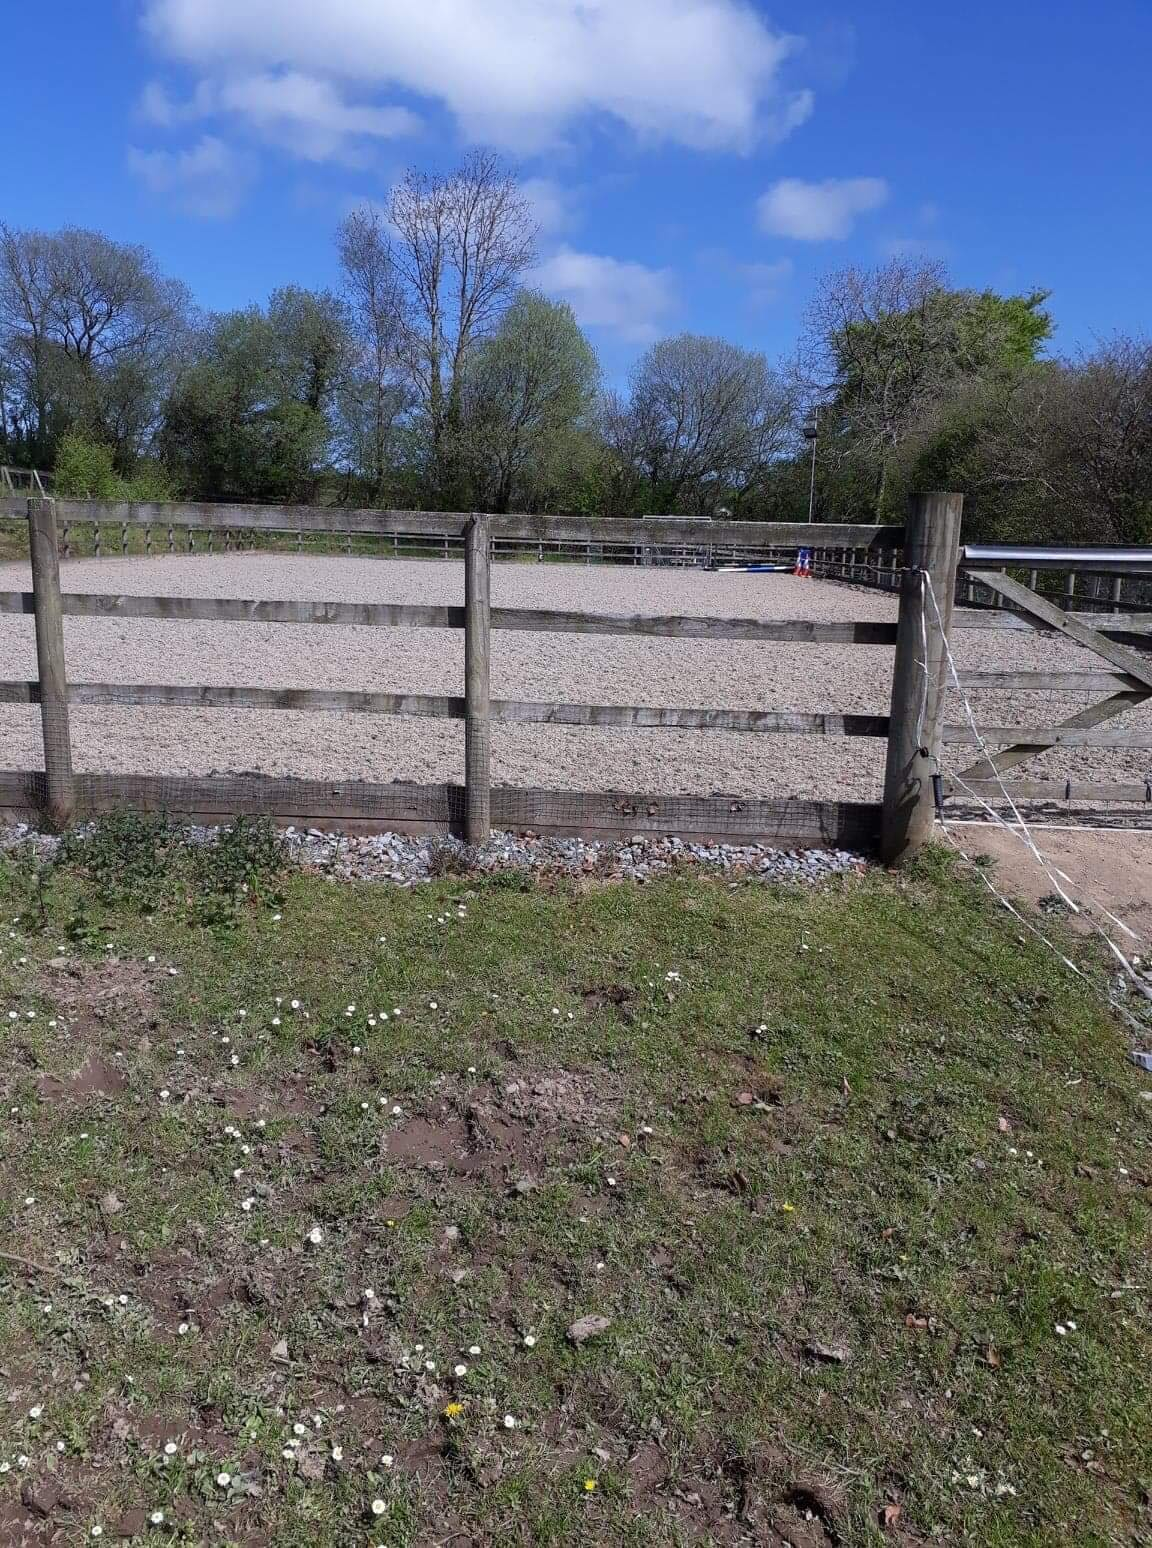 Manege and fencing